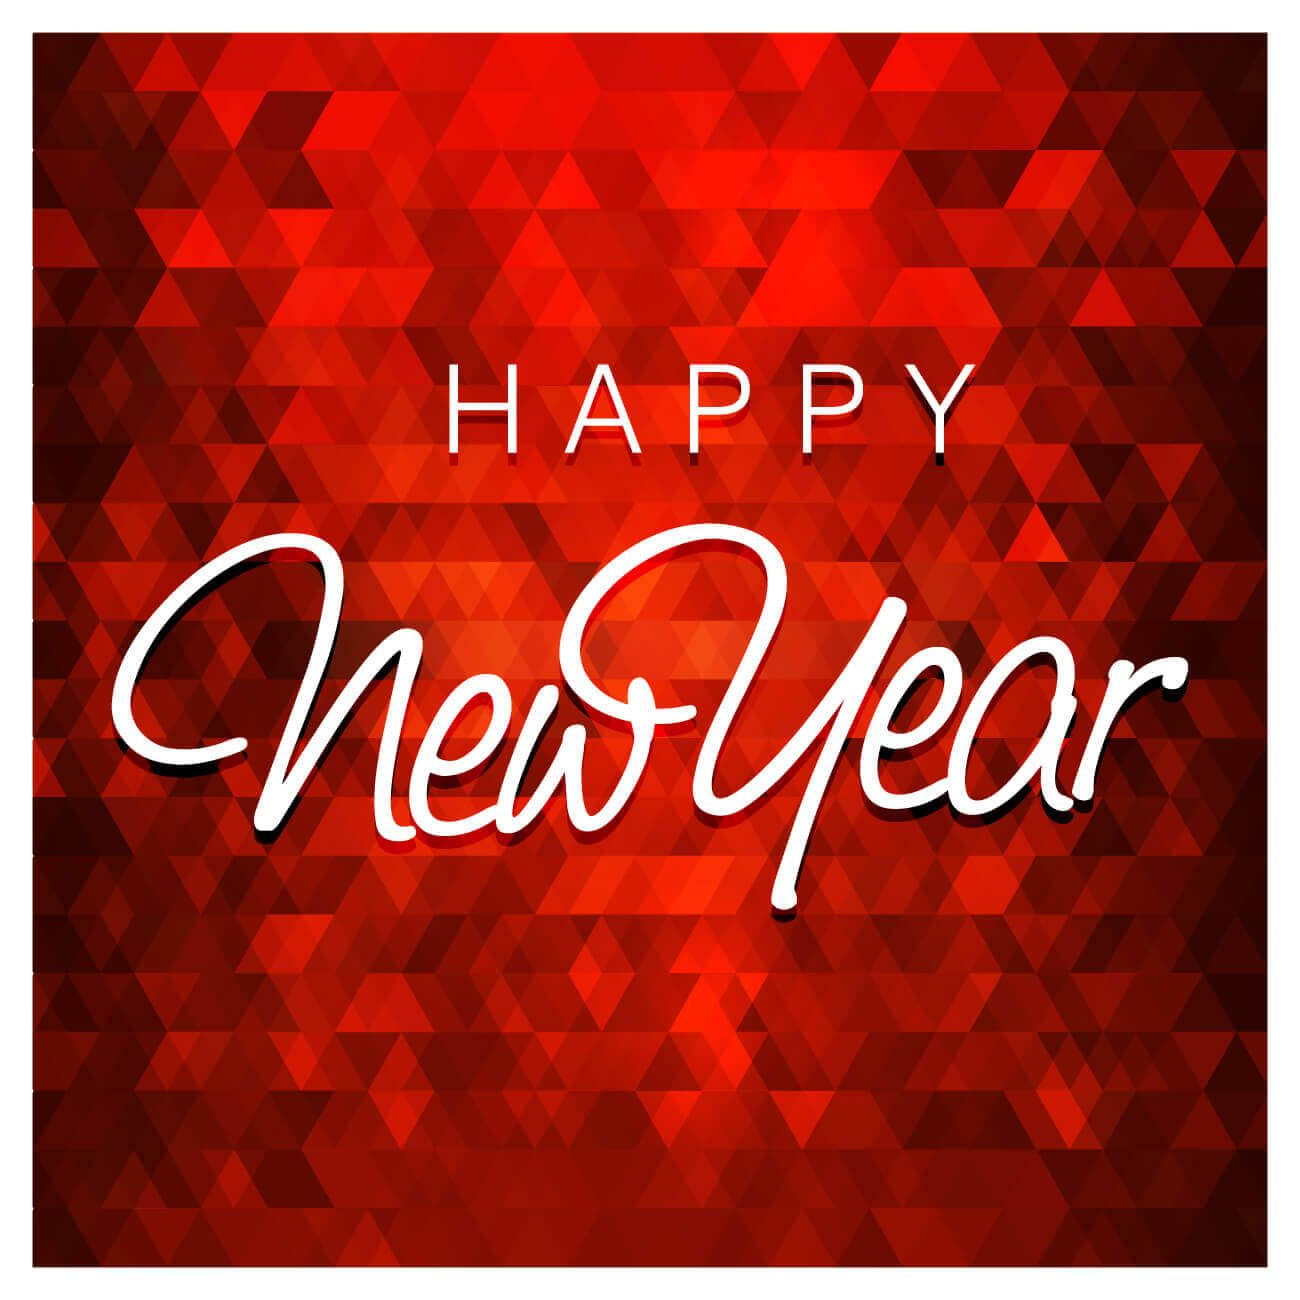 The best new year greetings are sent via facebook through chats or are sent via facebook through chats or uploading new years wishes and pictures on facebook you can also send funny wishes through text messages kristyandbryce Images